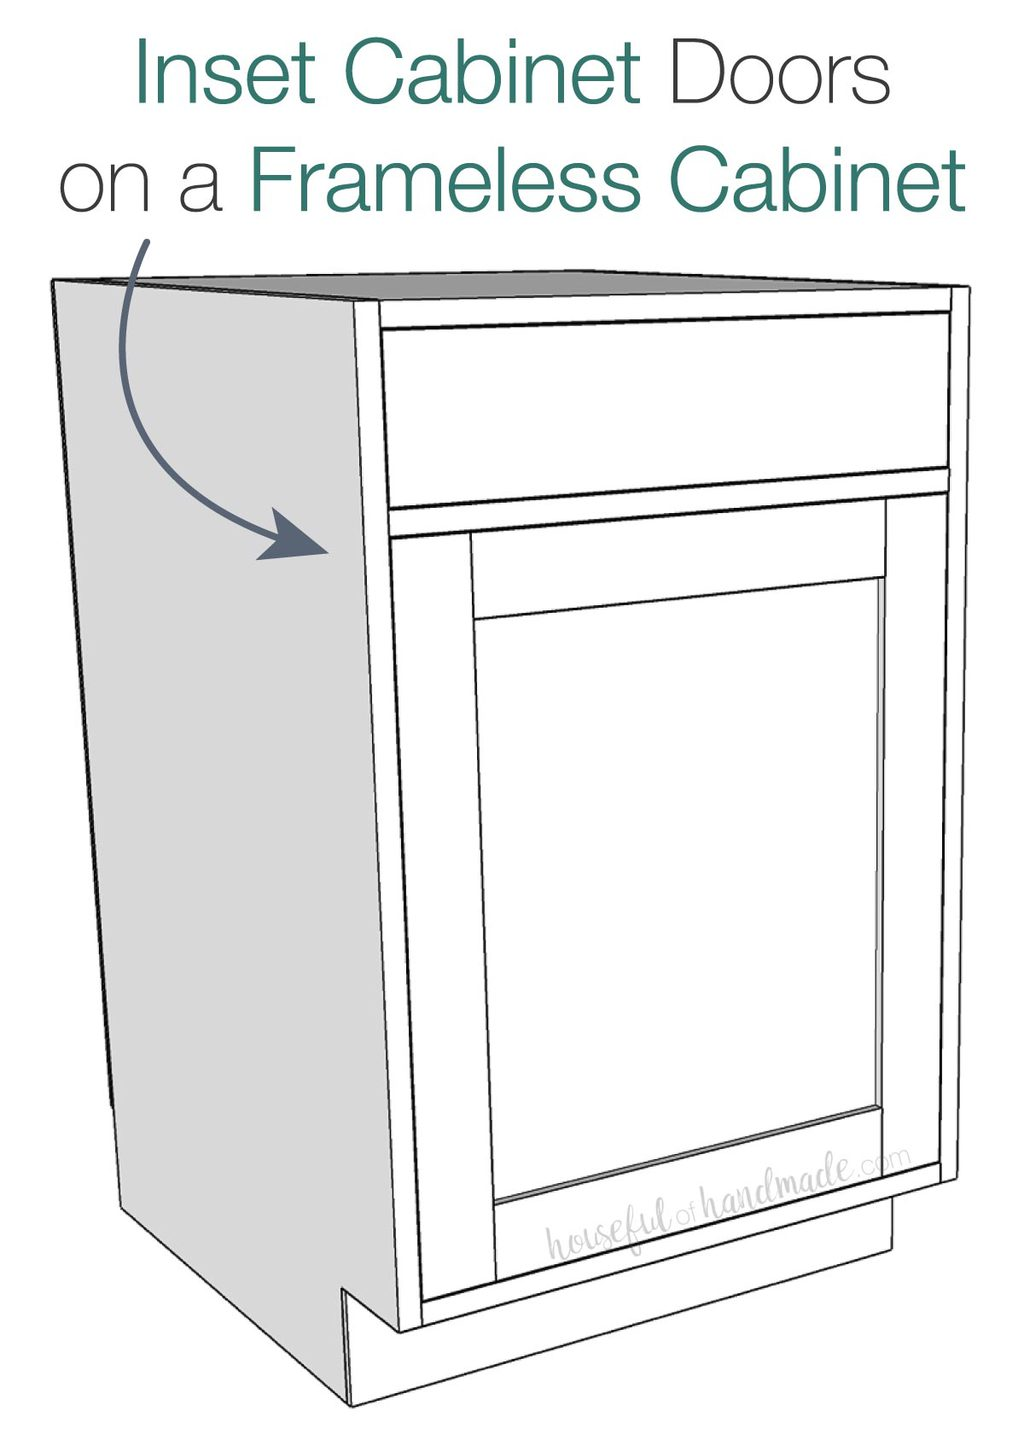 3D sketch of inset cabinet doors on a base cabinet with a drawer on top.